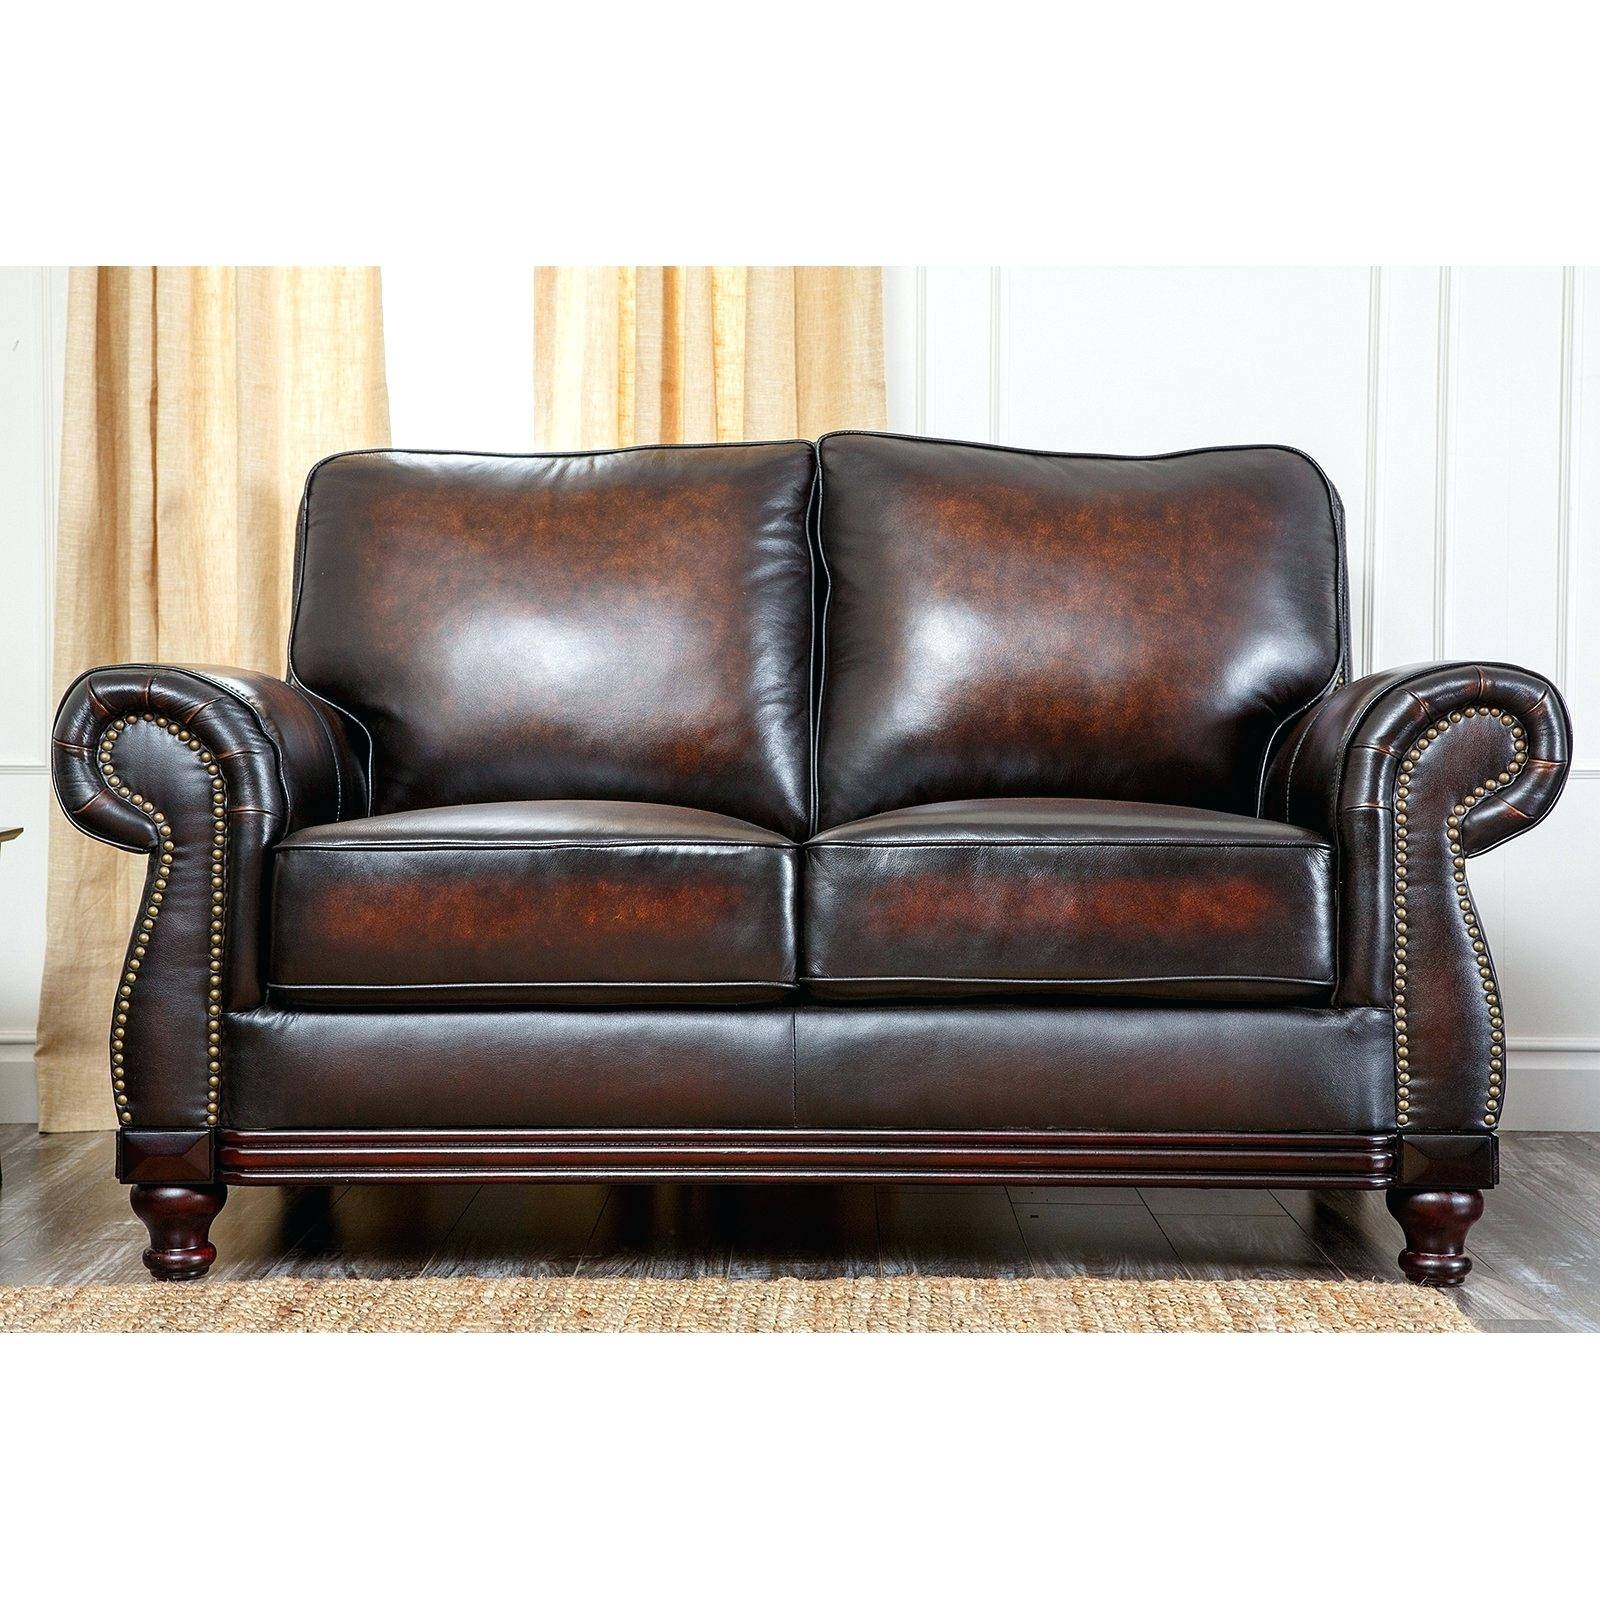 Arhaus Leather Sofa Abbyson Barclay 4 Piece Hand Rubbed Set Brown inside Arhaus Leather Sofas (Image 2 of 15)